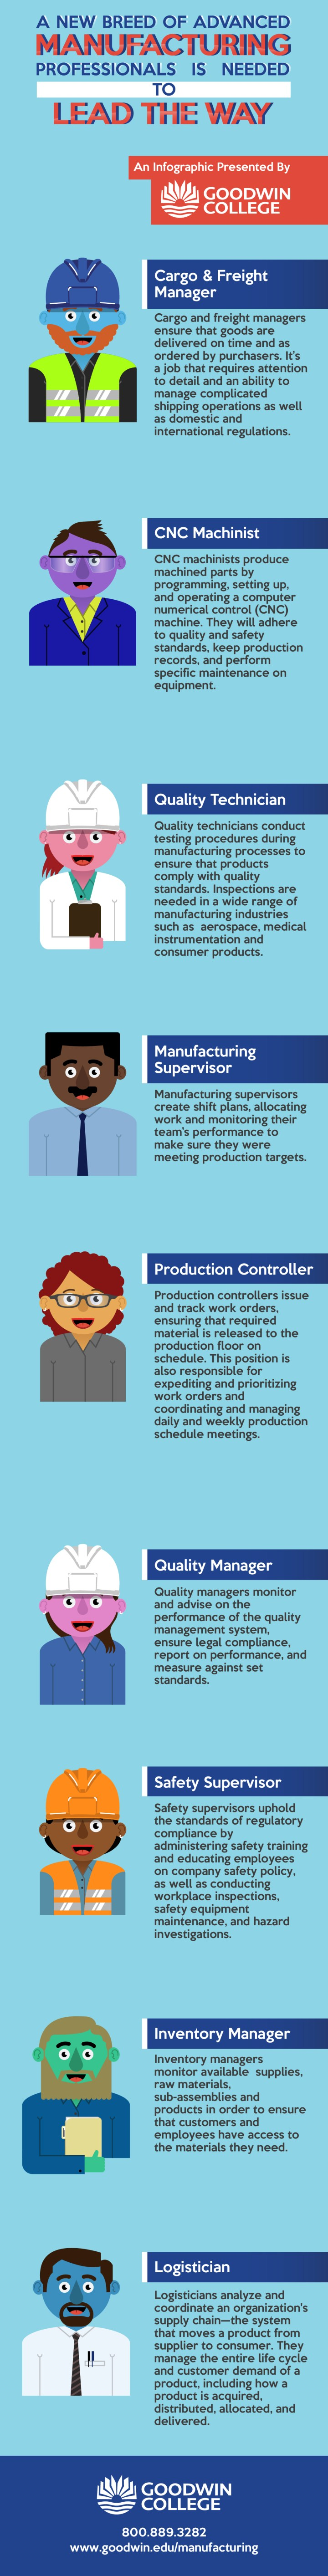 Careers in the Manufacturing Industry